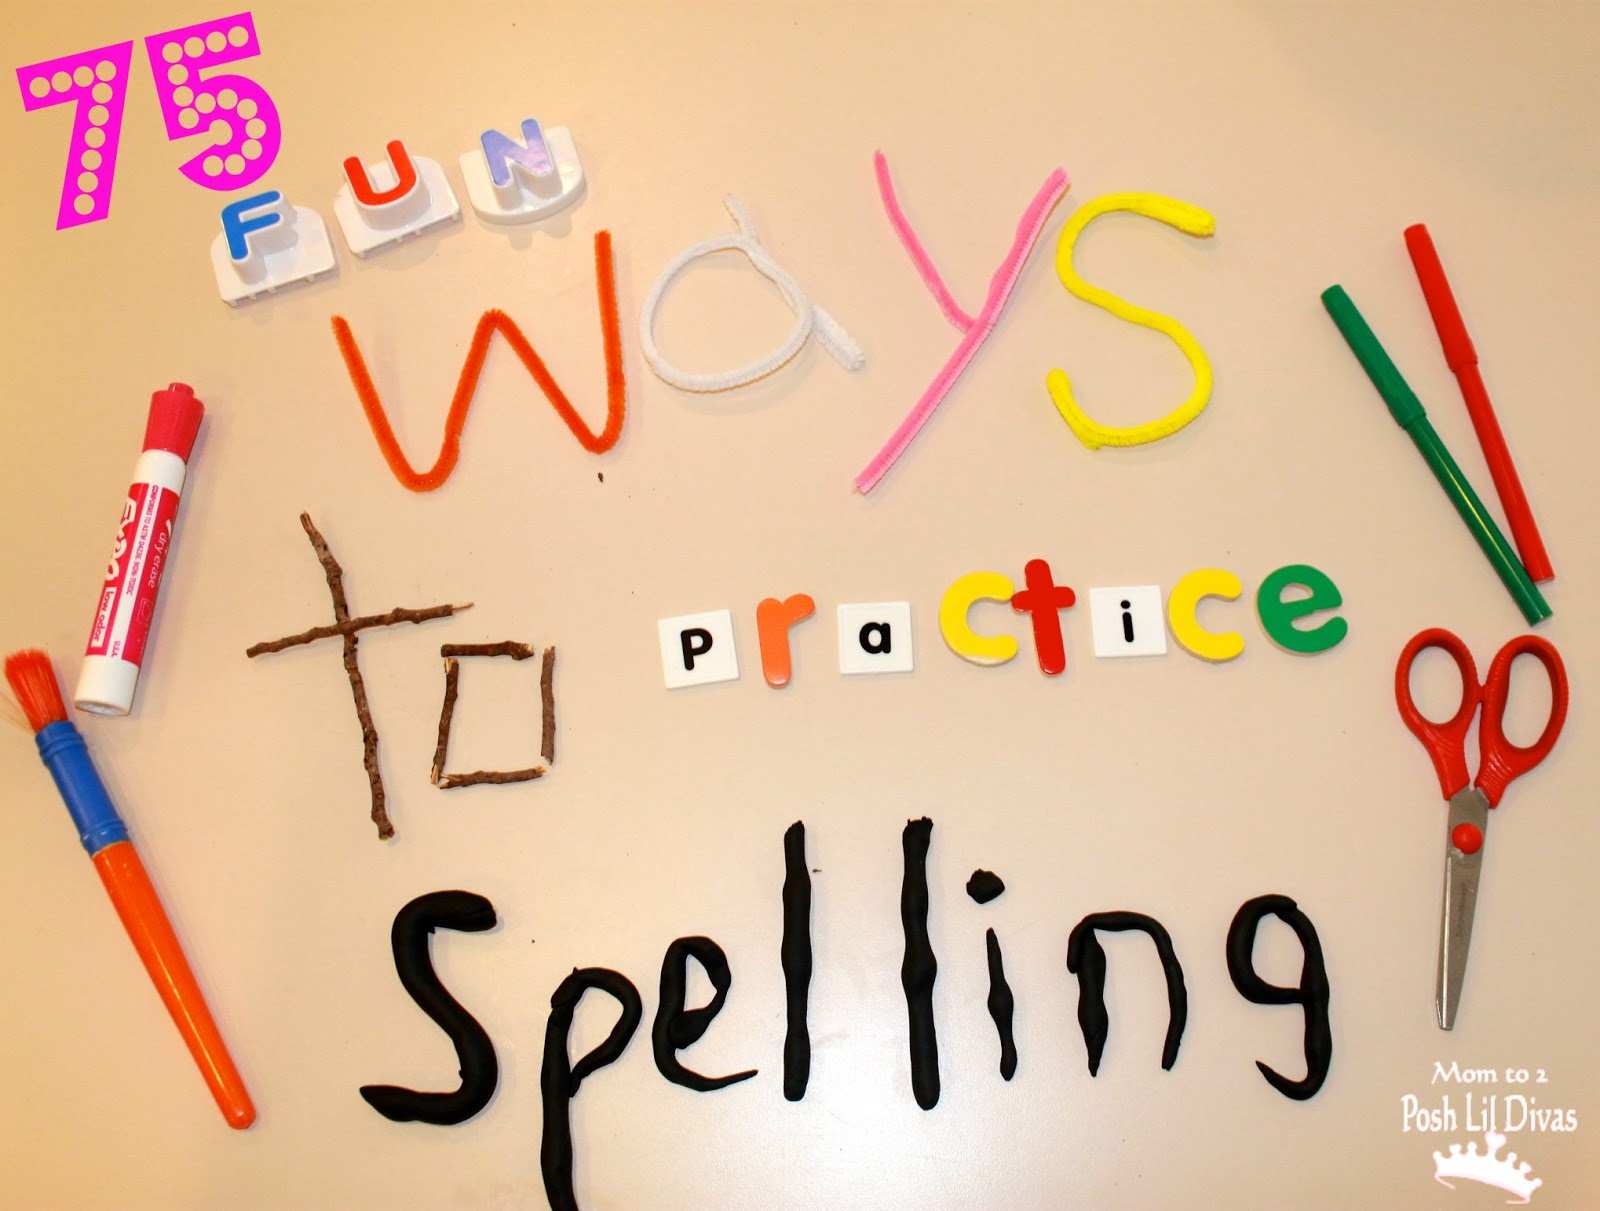 ... Dough Words - use play dough to form letters to spell out each word